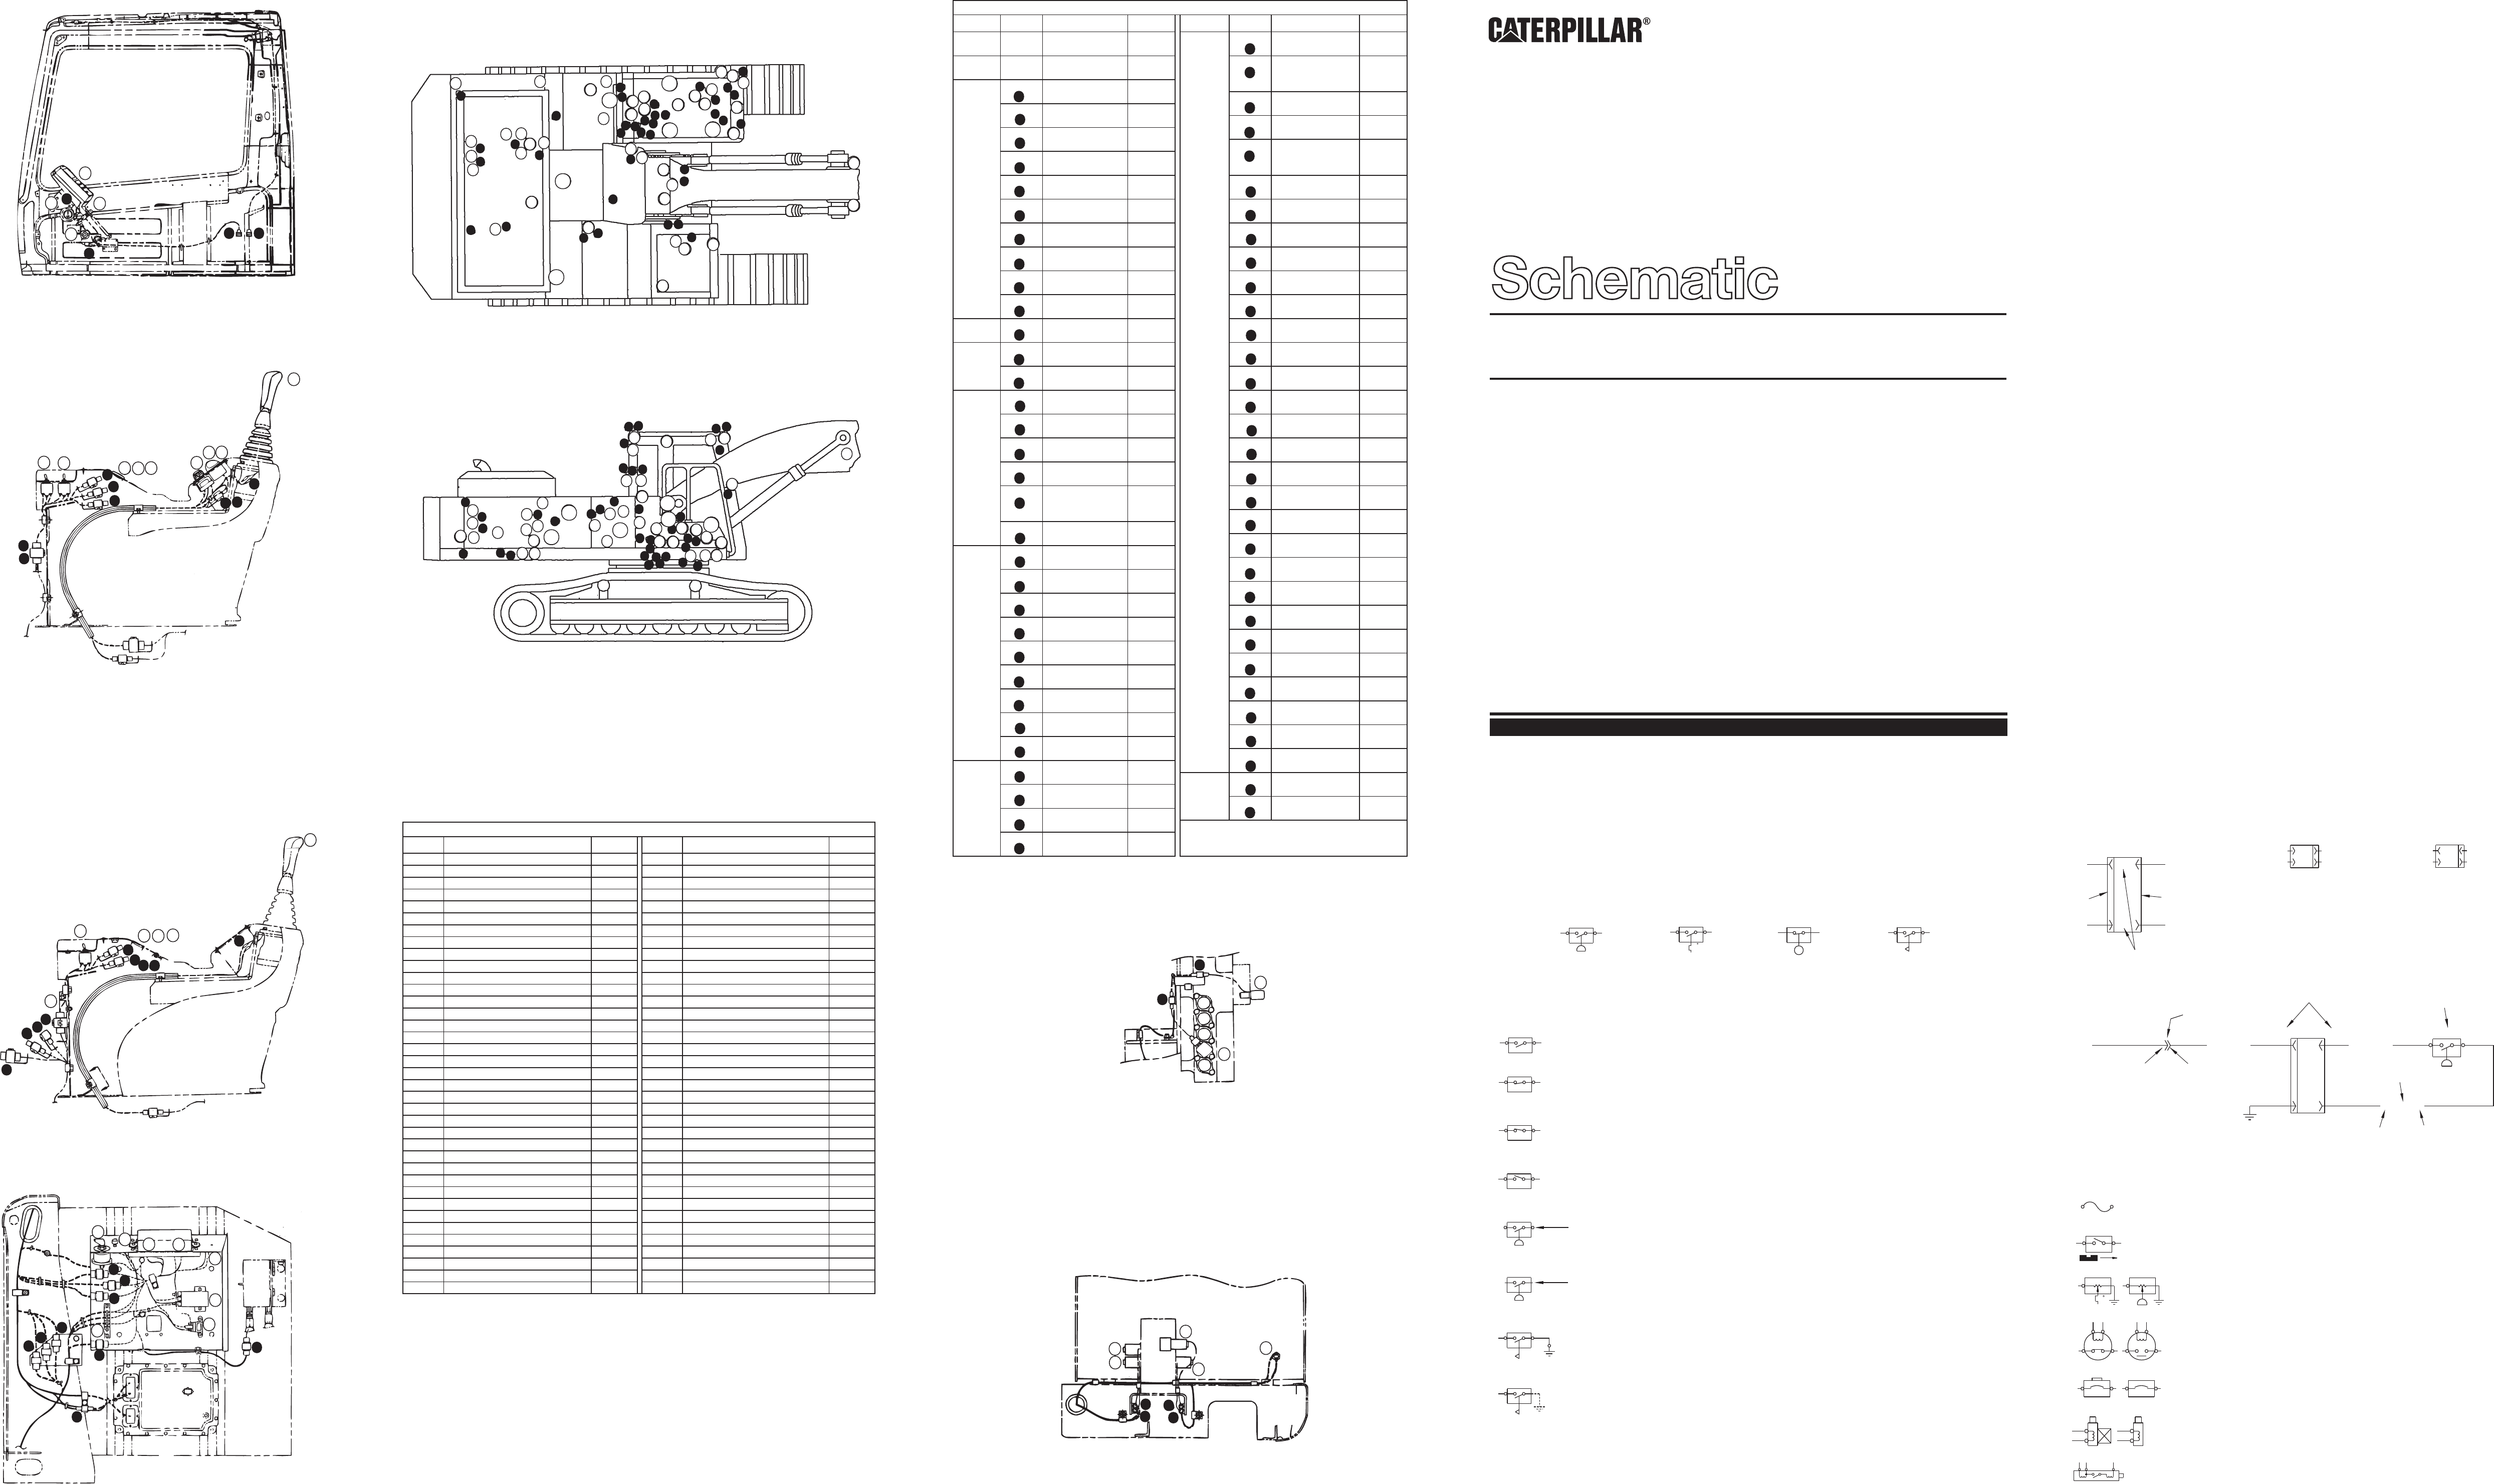 322 Electrical System Schematic